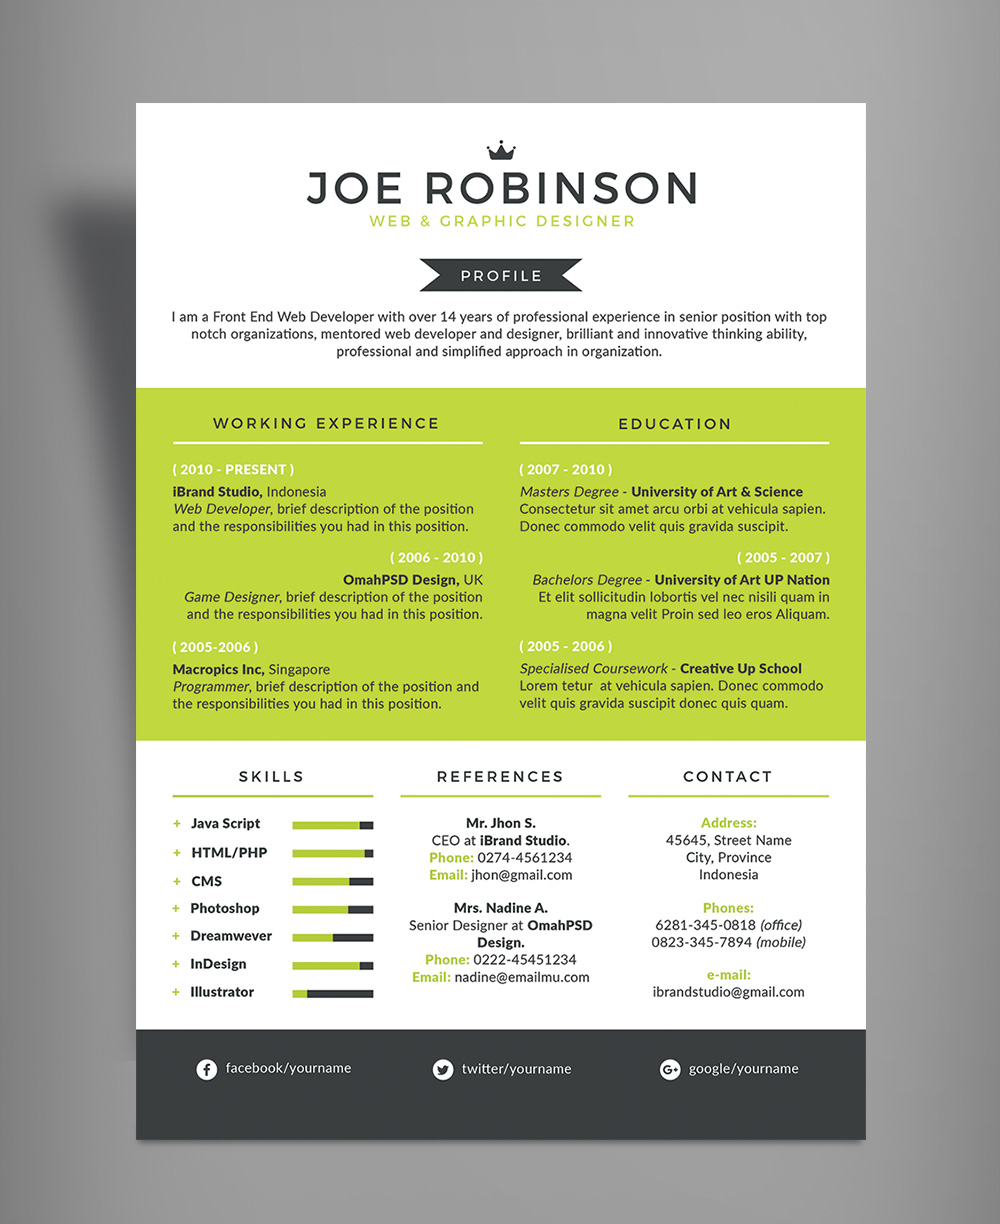 Elegant & Professional Resume (CV) Design Template in 3 Different Colors PSD File (4)